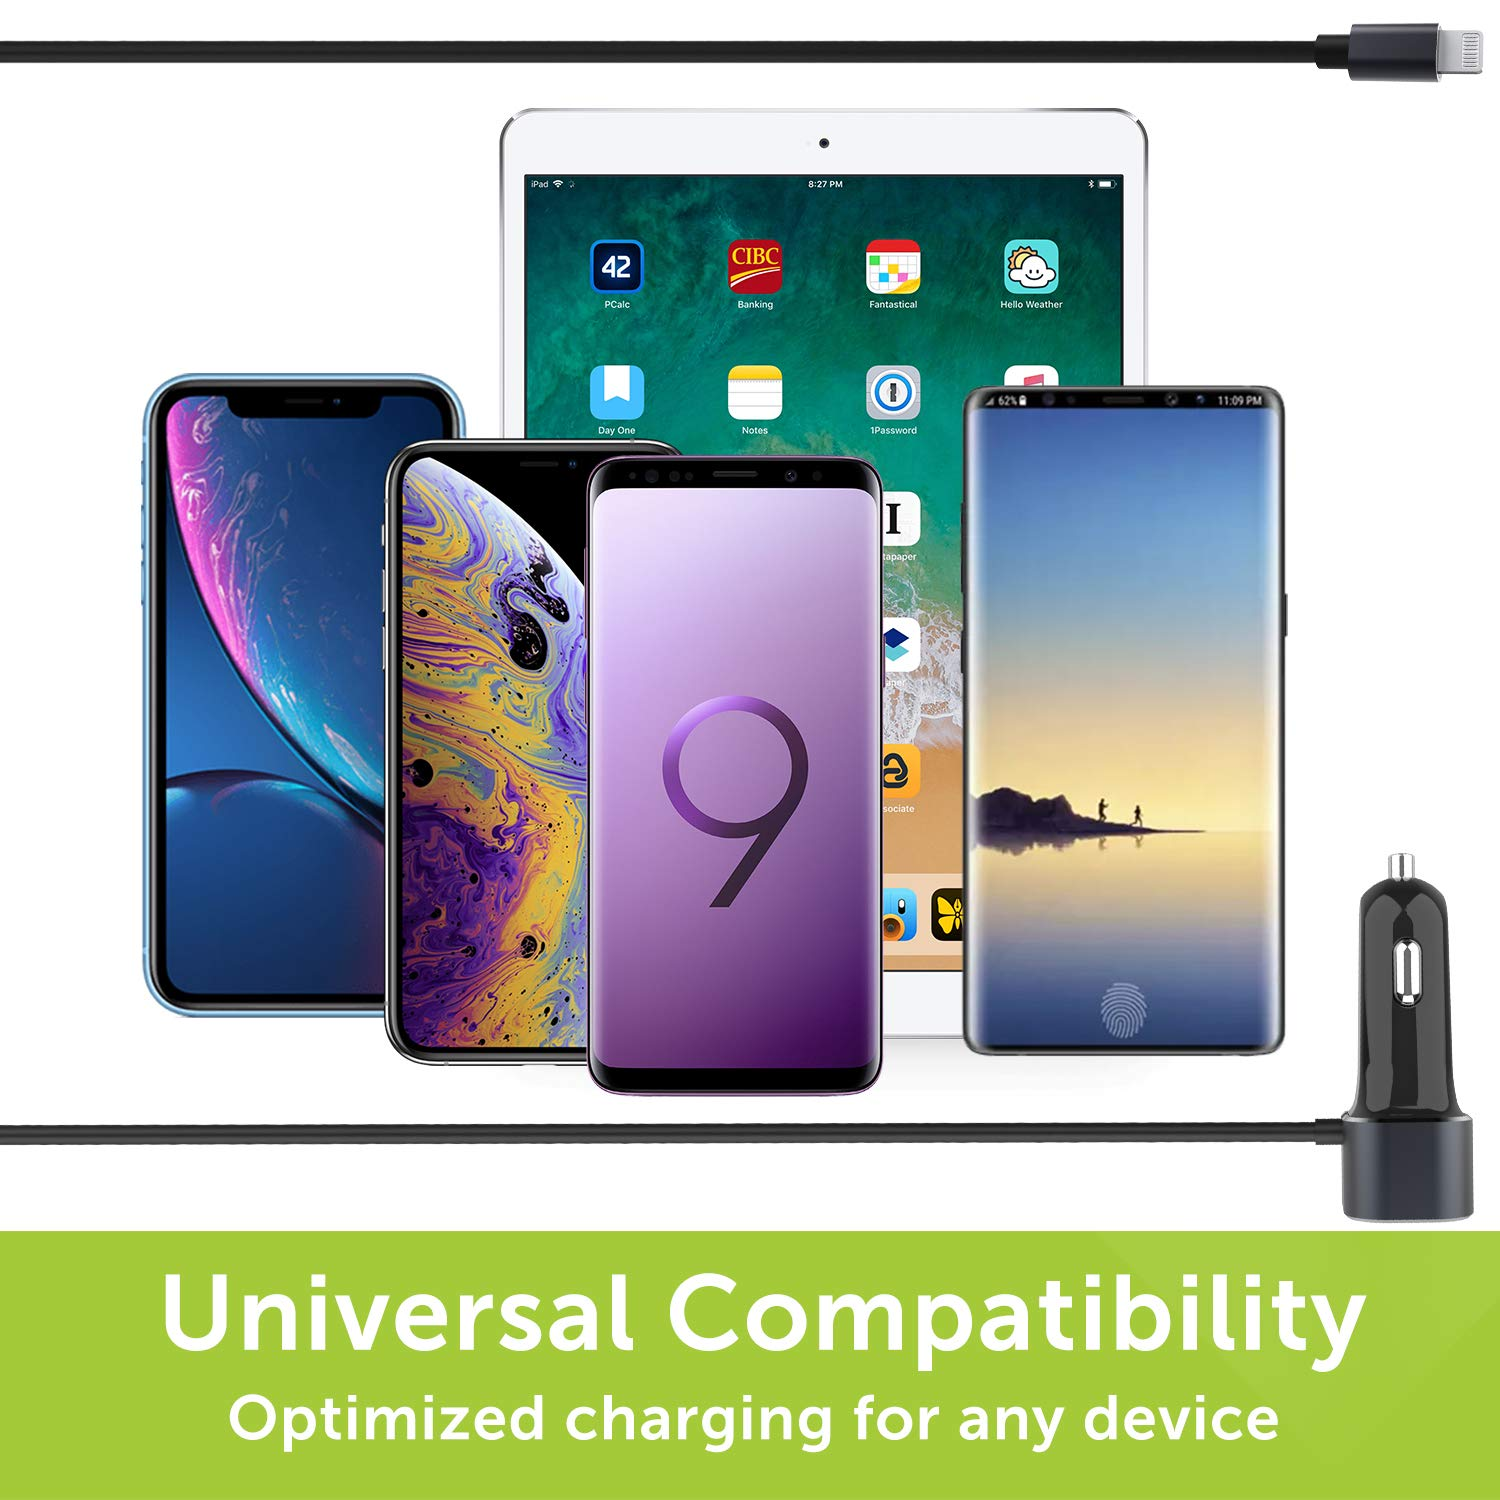 Apple MFI Certified iPhone X//XR//XS//Max//8//7//+,iPad Air 2,Samsung S10//S9//S8 4351487244 Lightning Charging Cable and 18W Quick Charger 3.0 Port Compatible w BrexLink 30W Charger Compact 12w iPhone Car Charger